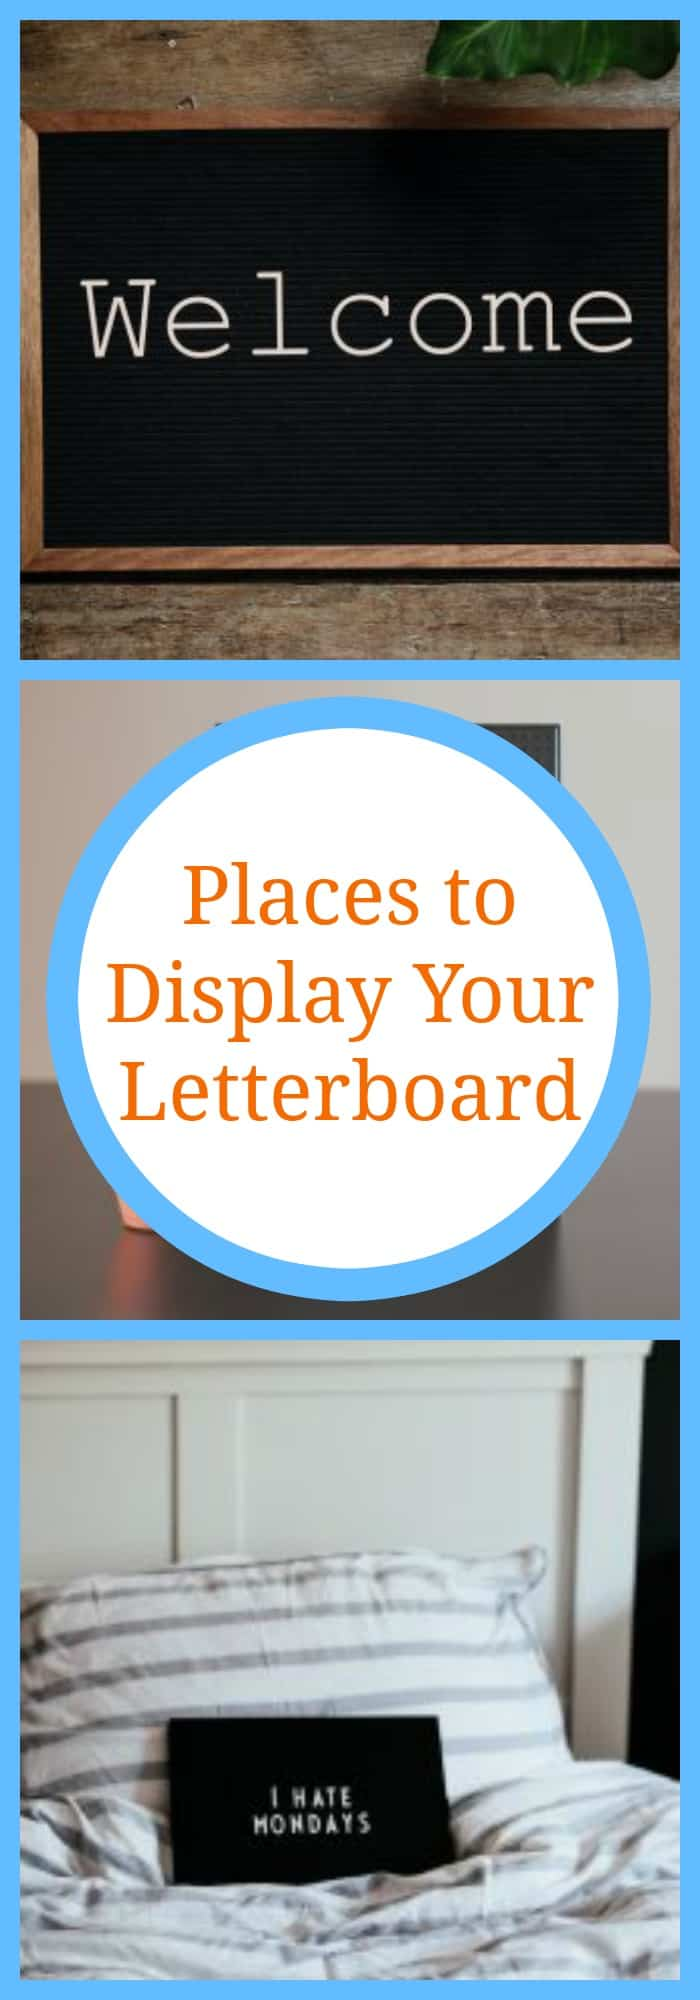 Places to Display Your Letterboard